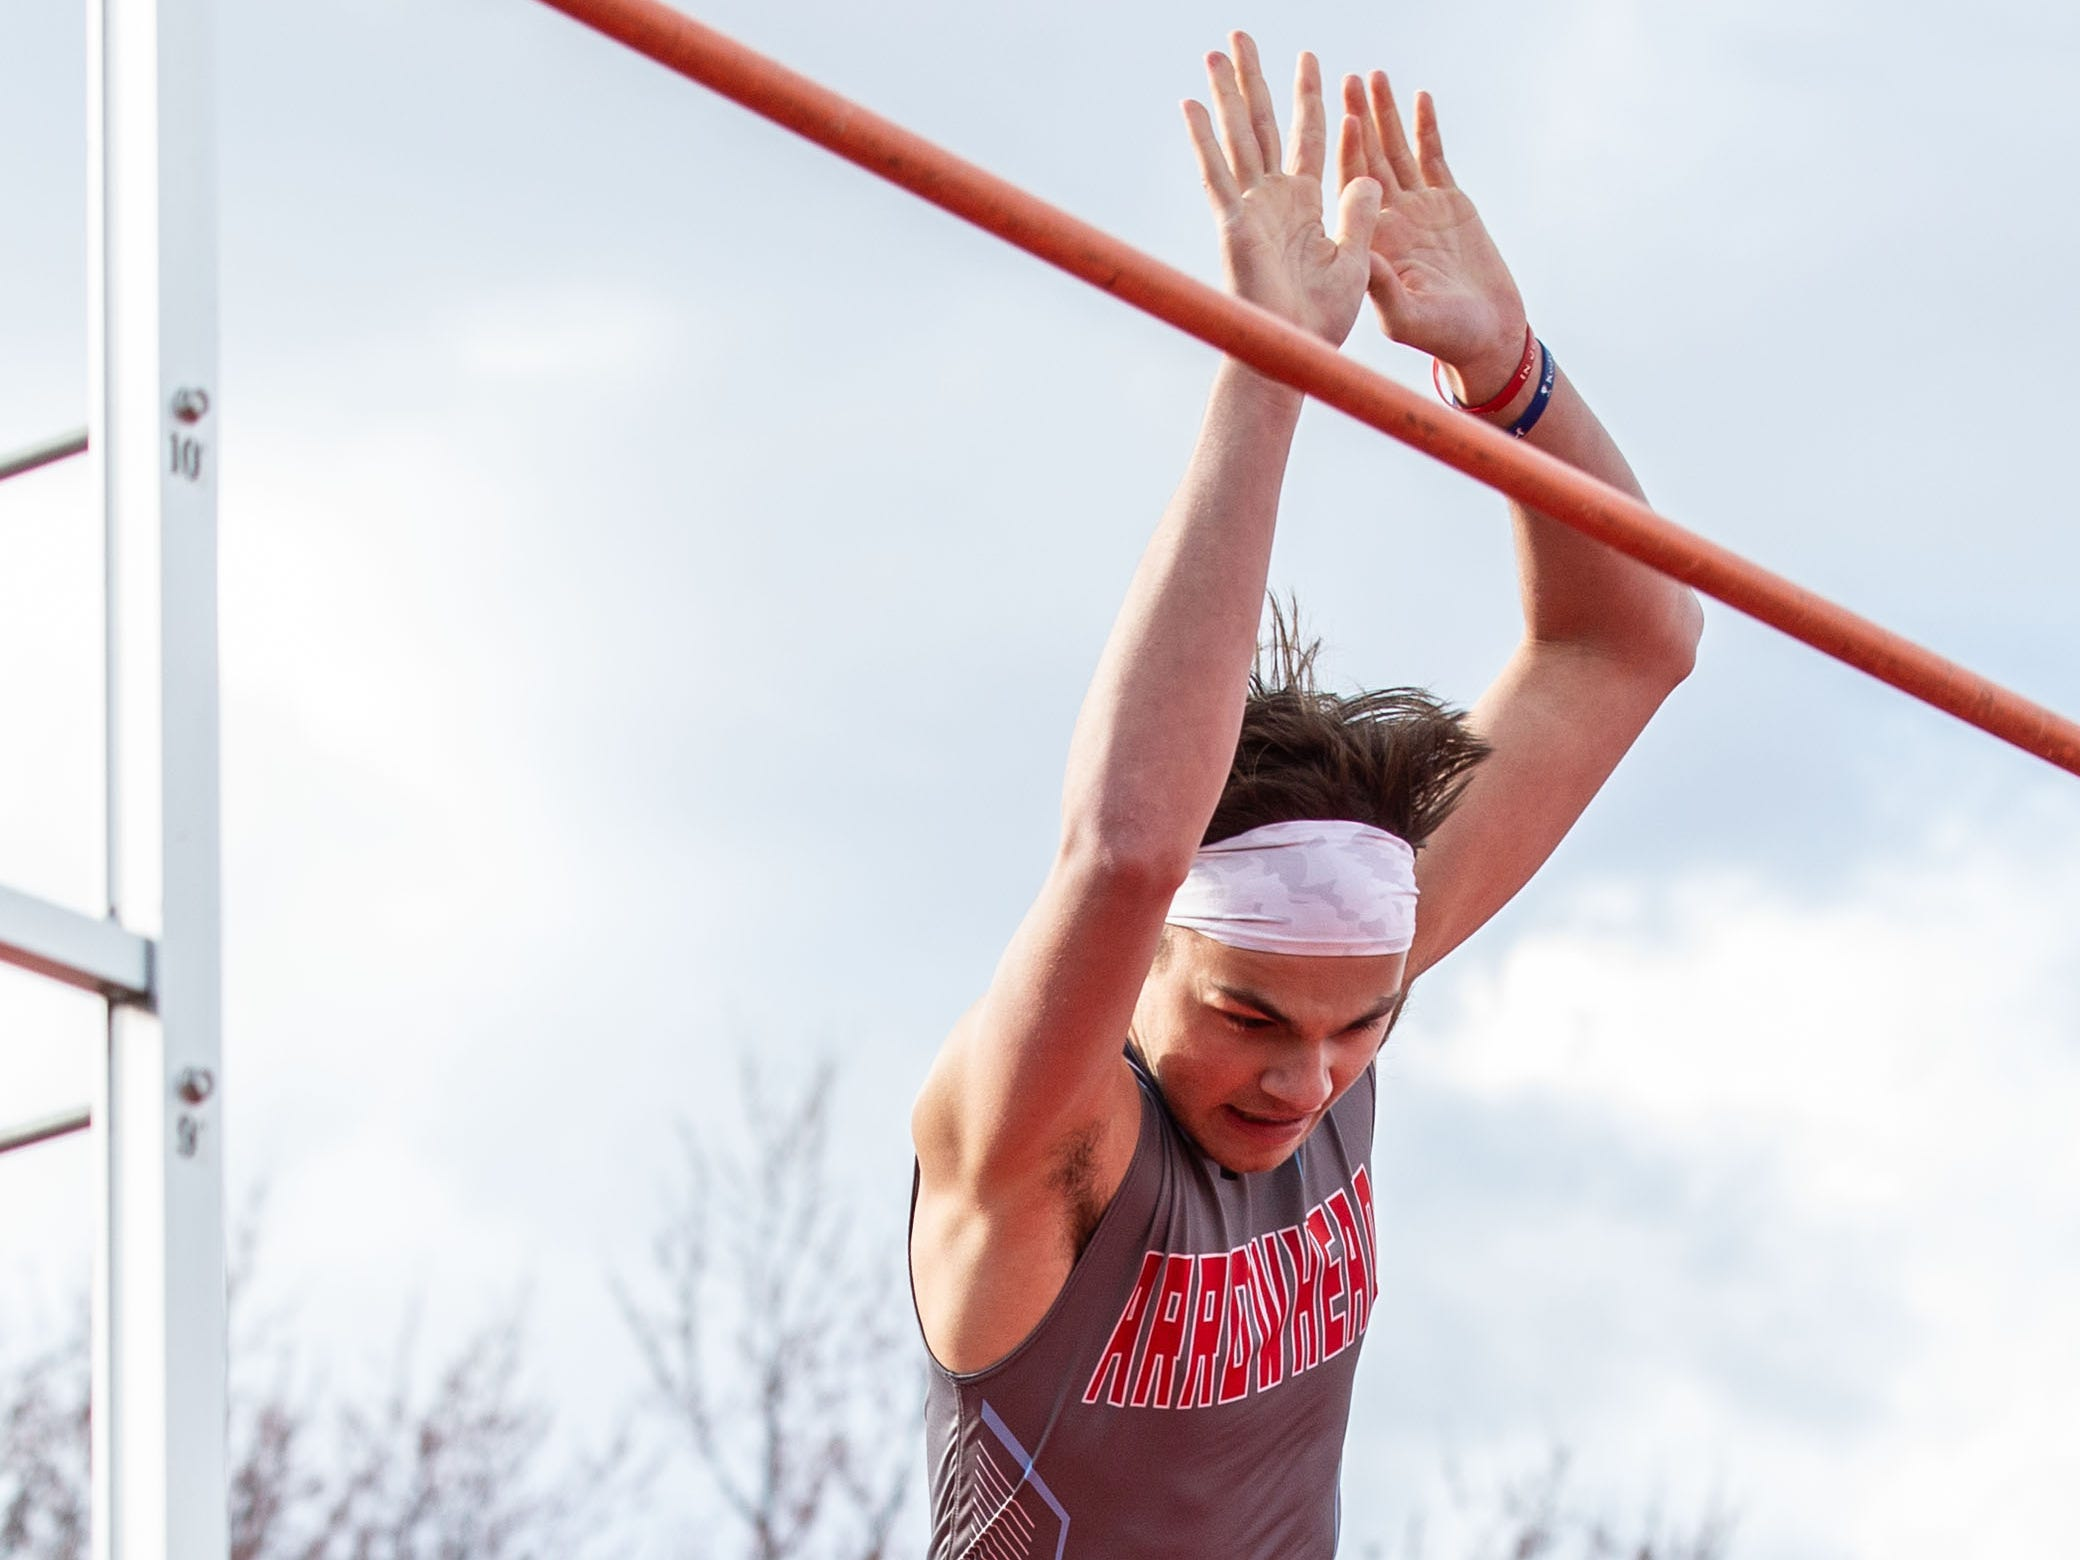 Arrowhead's Anthony Polentini competes in the pole vault during the Mike Gain 50th Annual Spartan Invitational at Brookfield East on Tuesday, April 9, 2019.